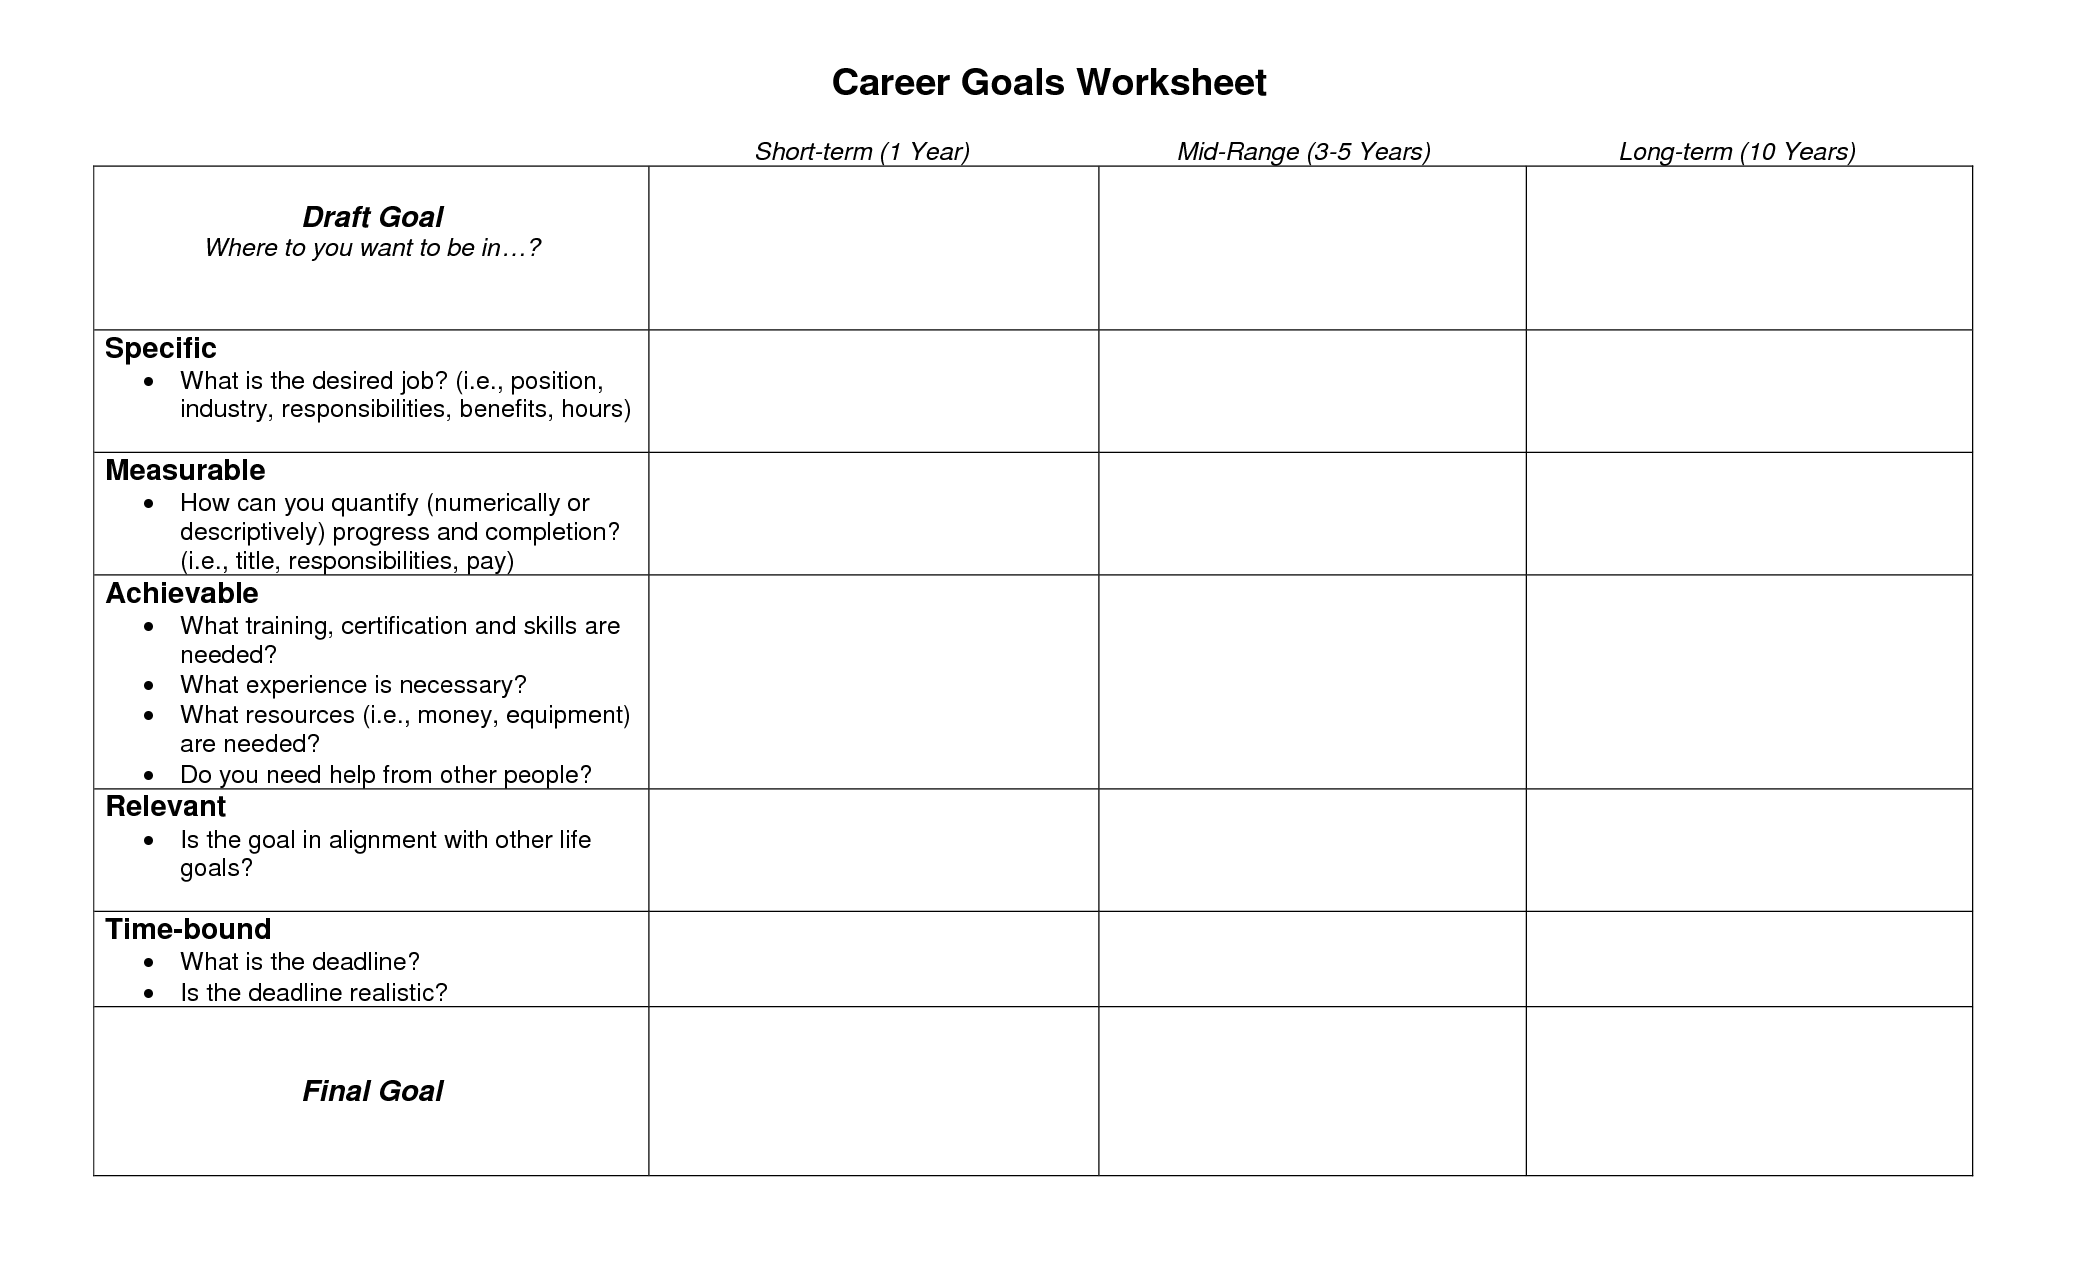 Worksheets Smart Goals Worksheets smart goals worksheet for career google search search